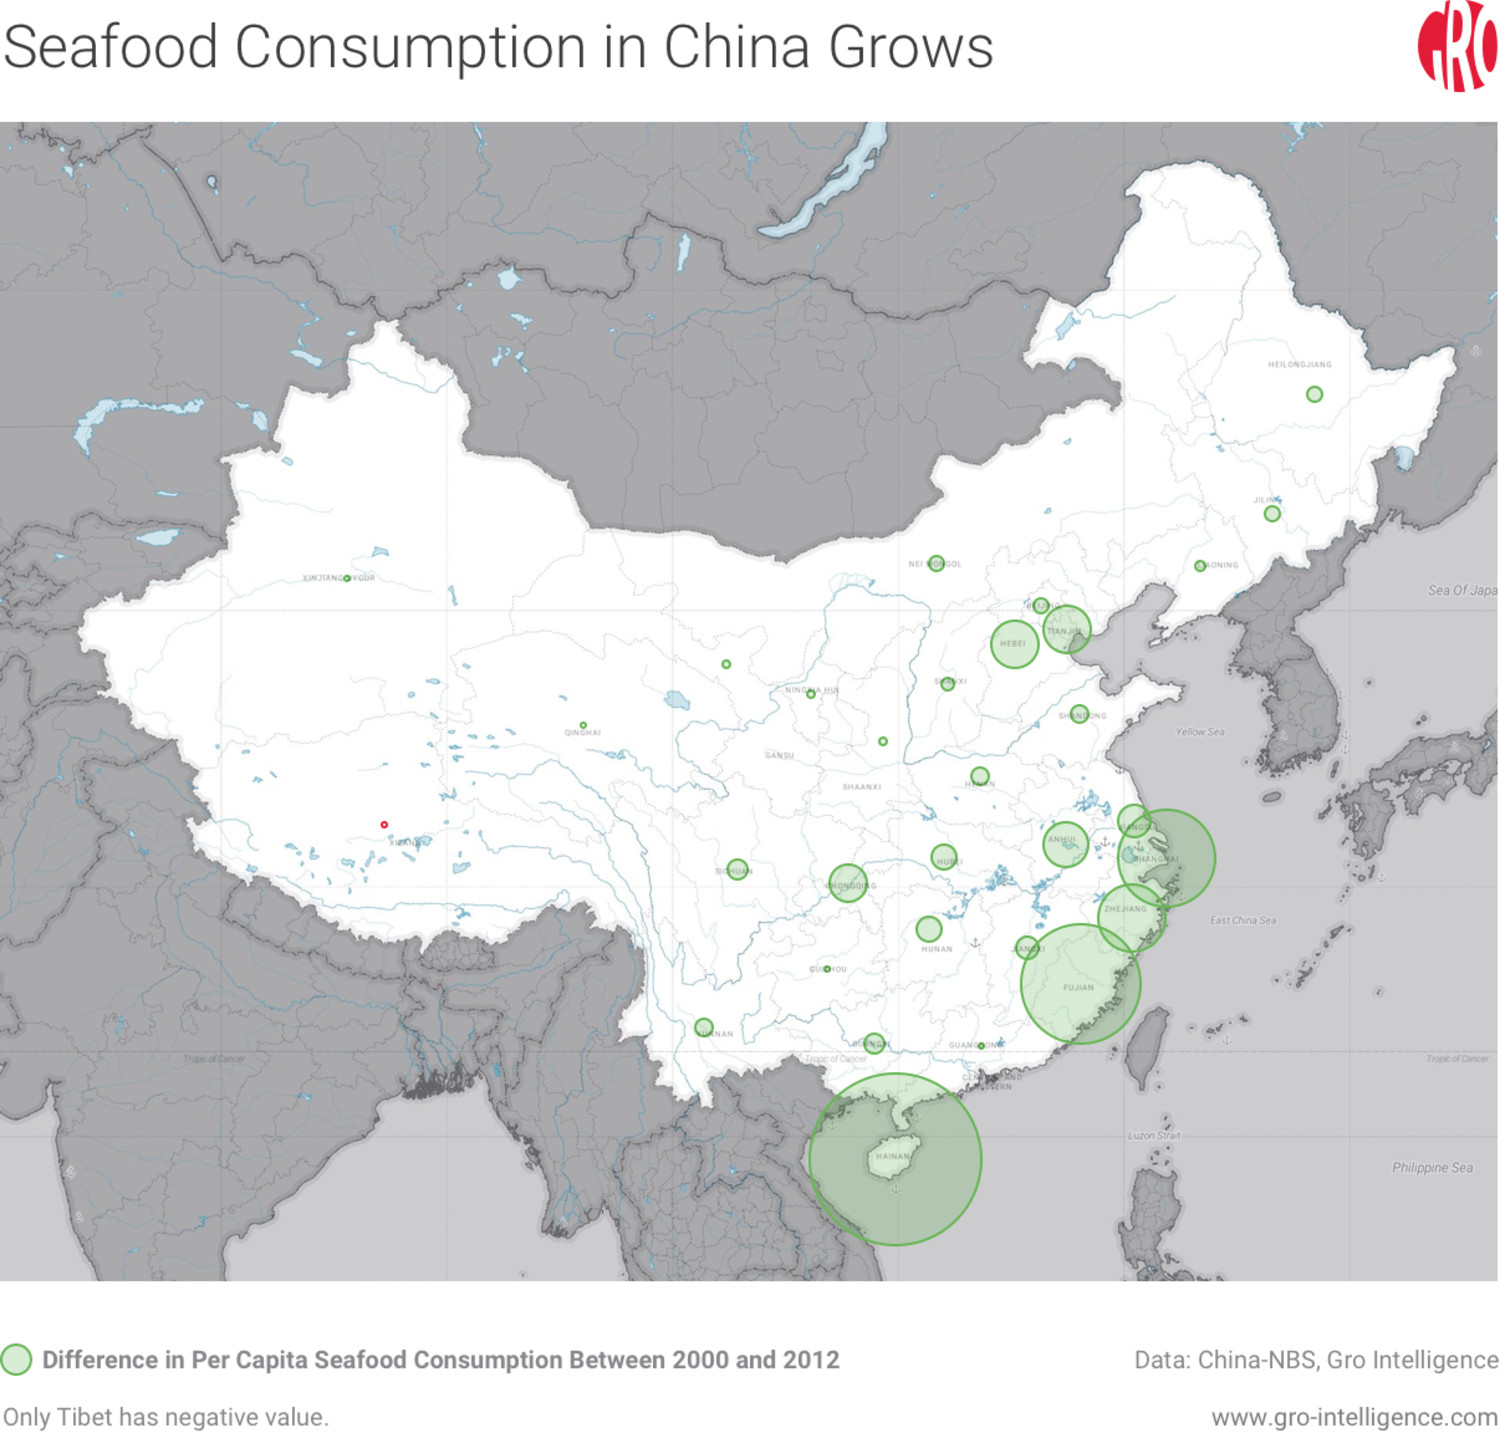 Seafood Consumption in China Grows